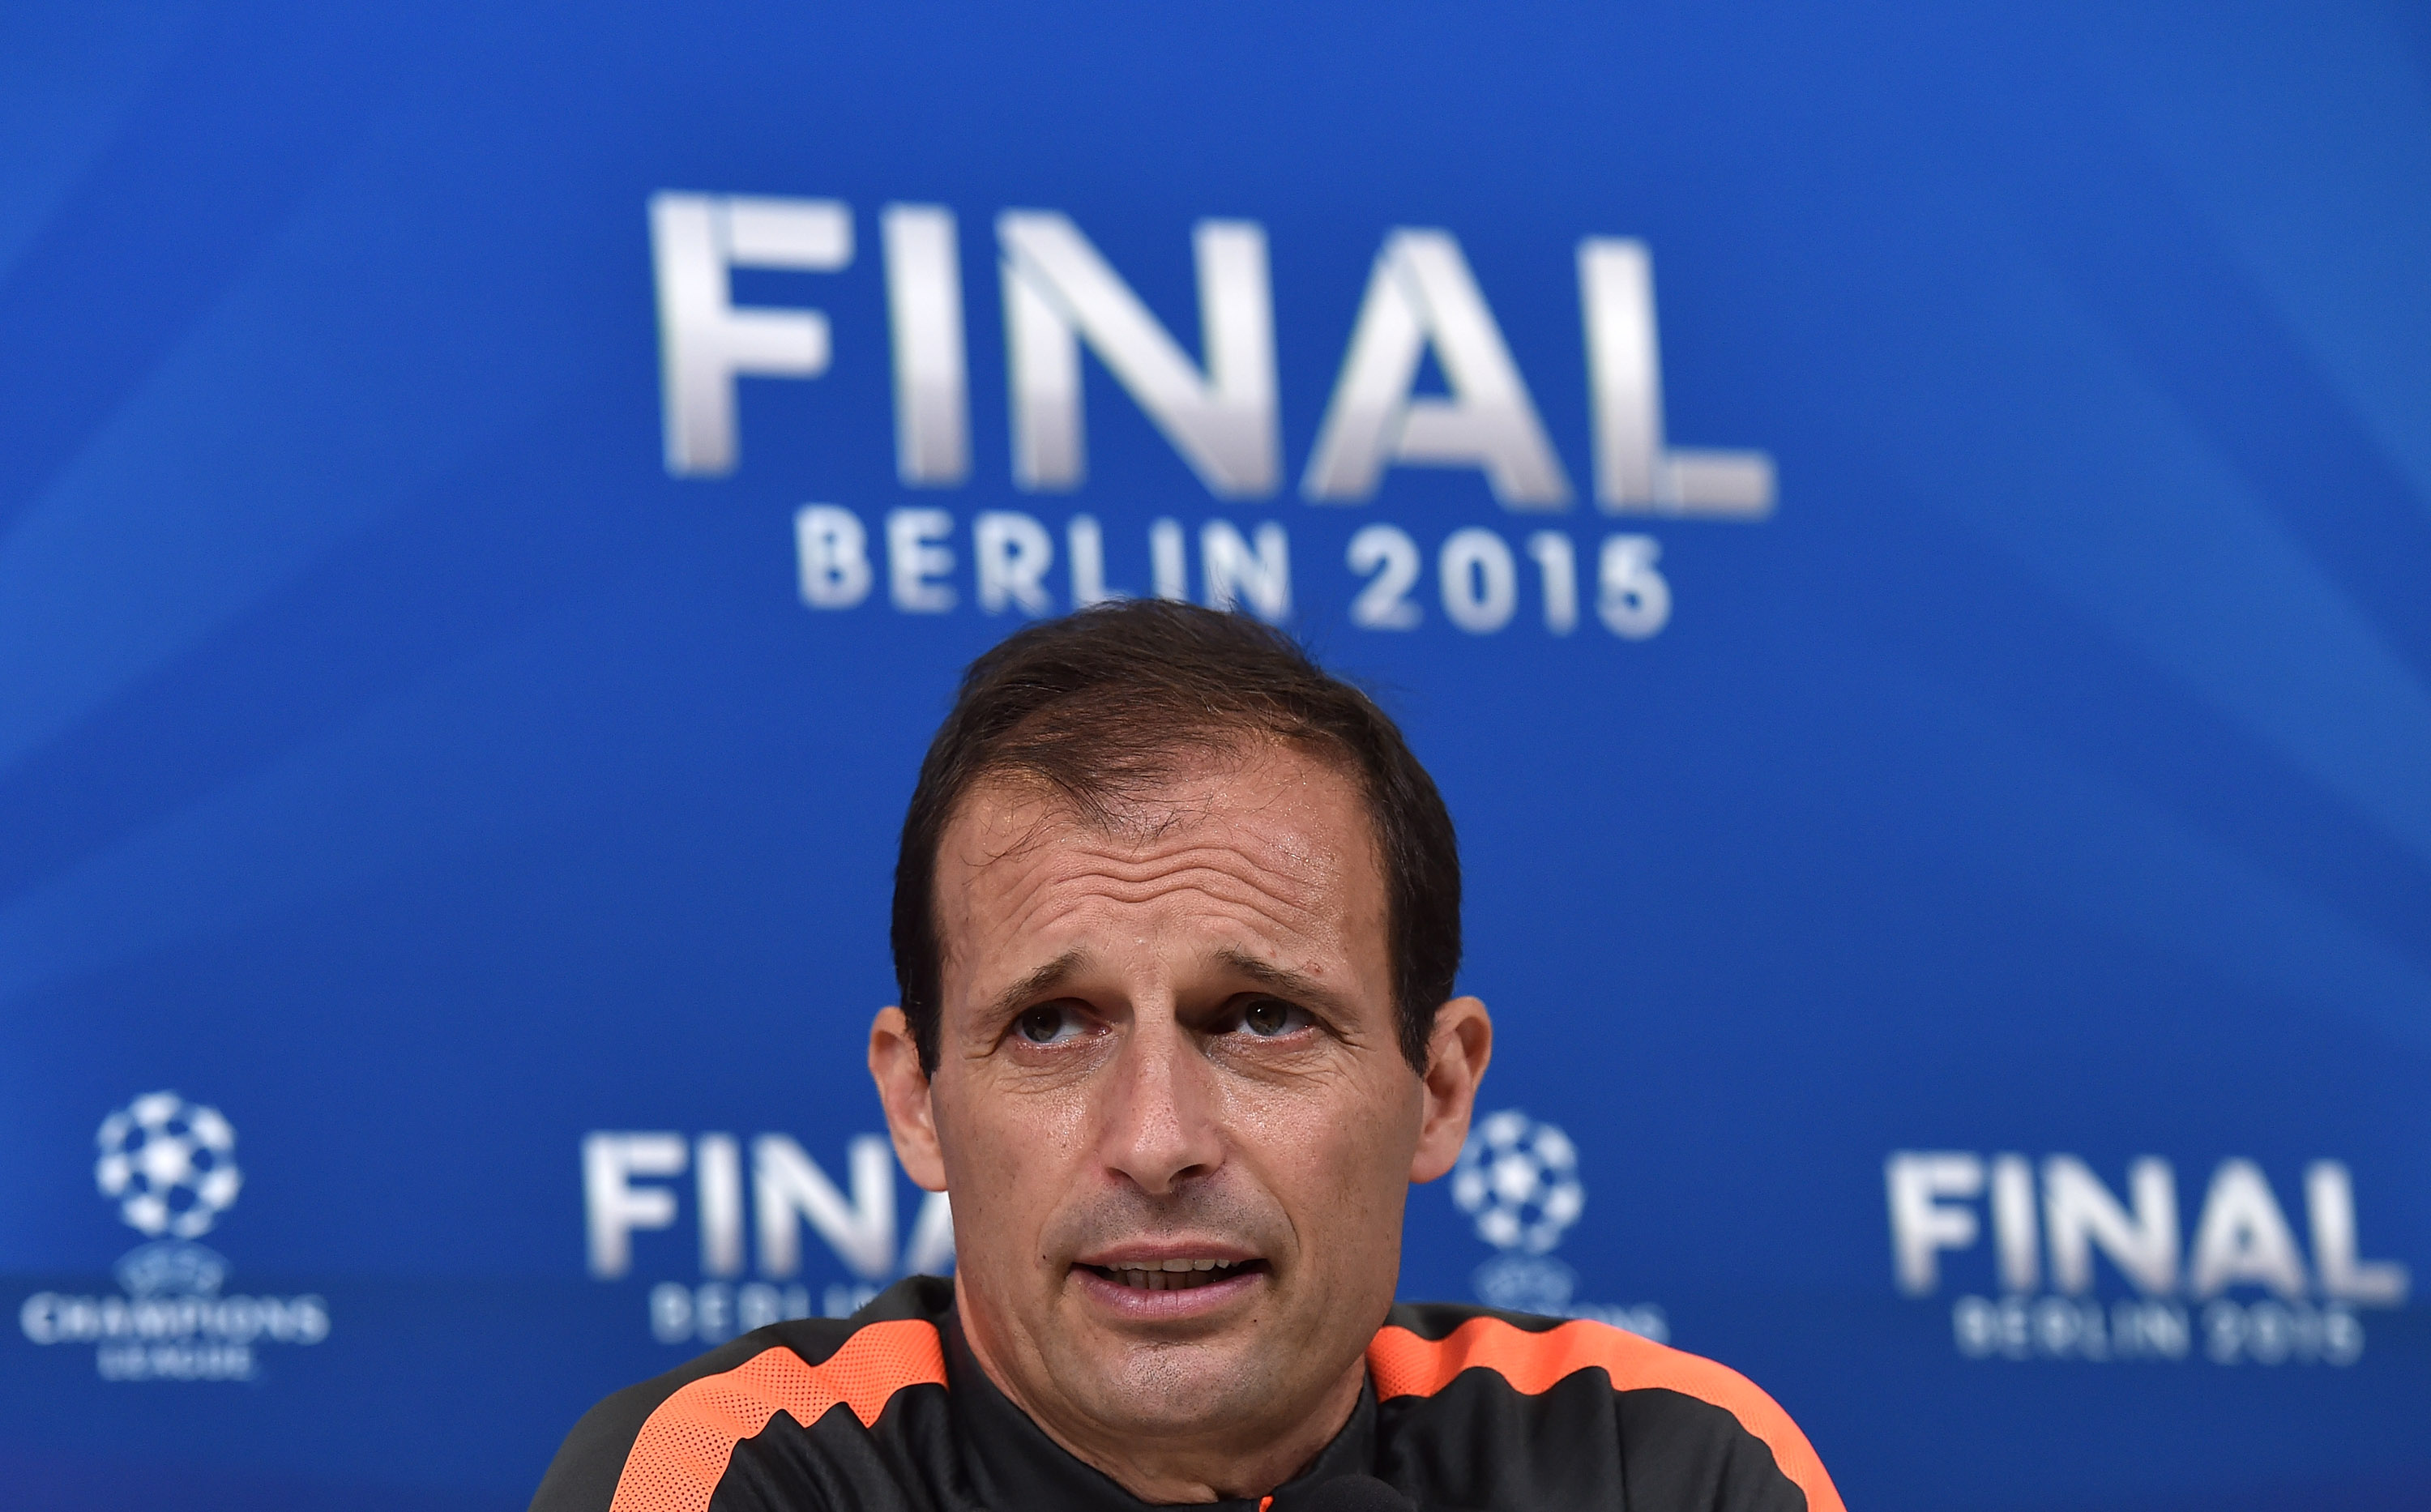 What does Allegri have up his sleeve for the Final?